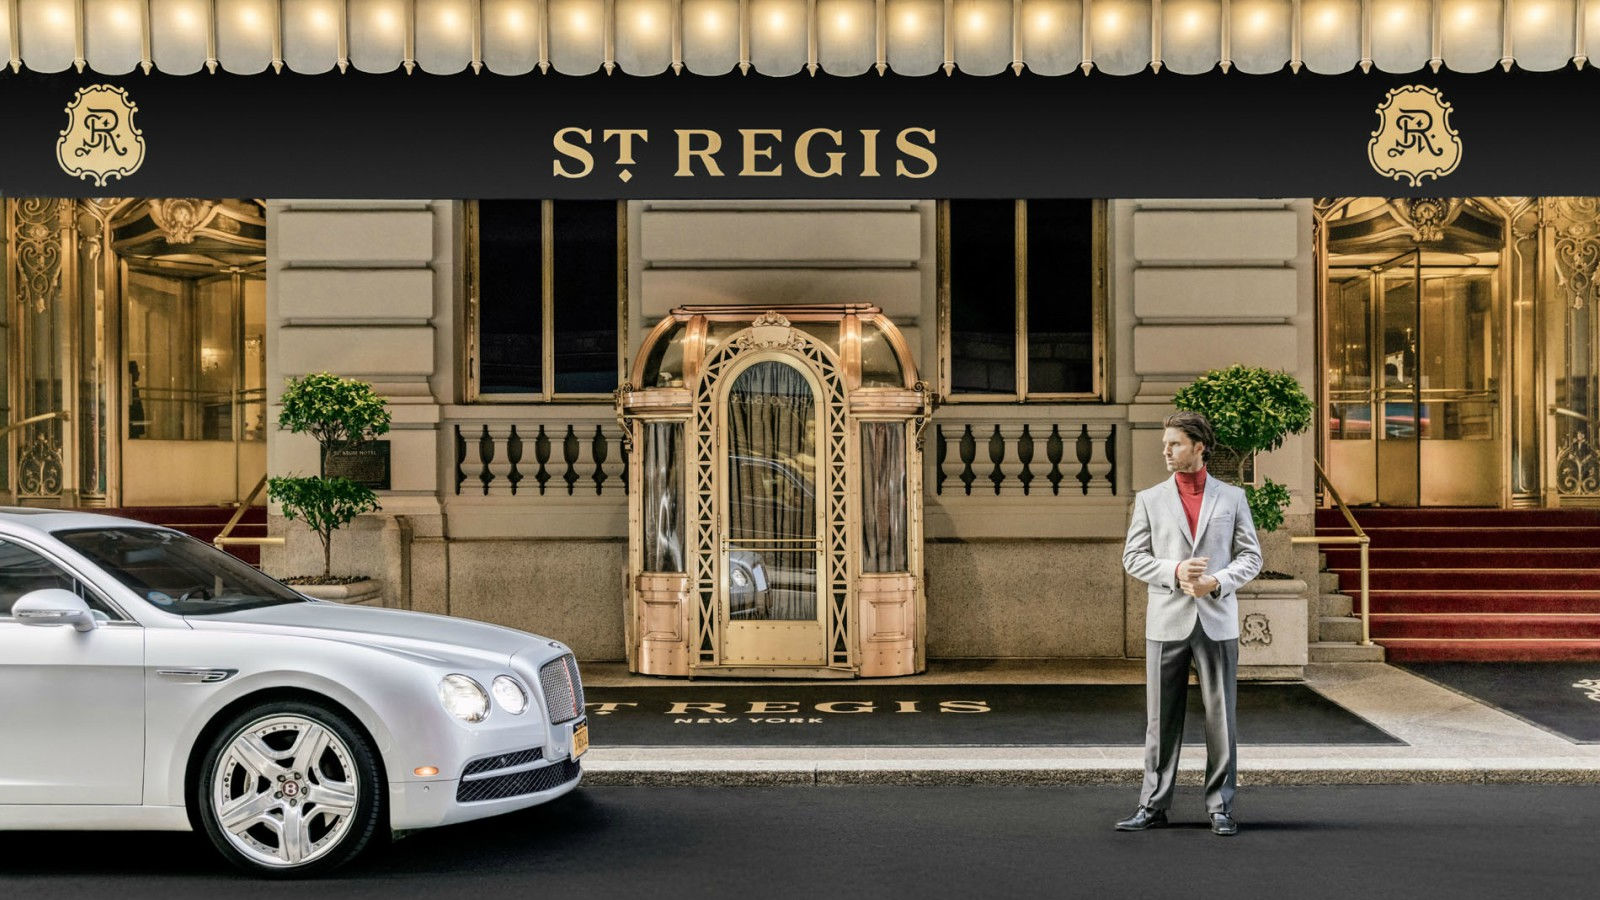 New York City Attractions | The St. Regis New York